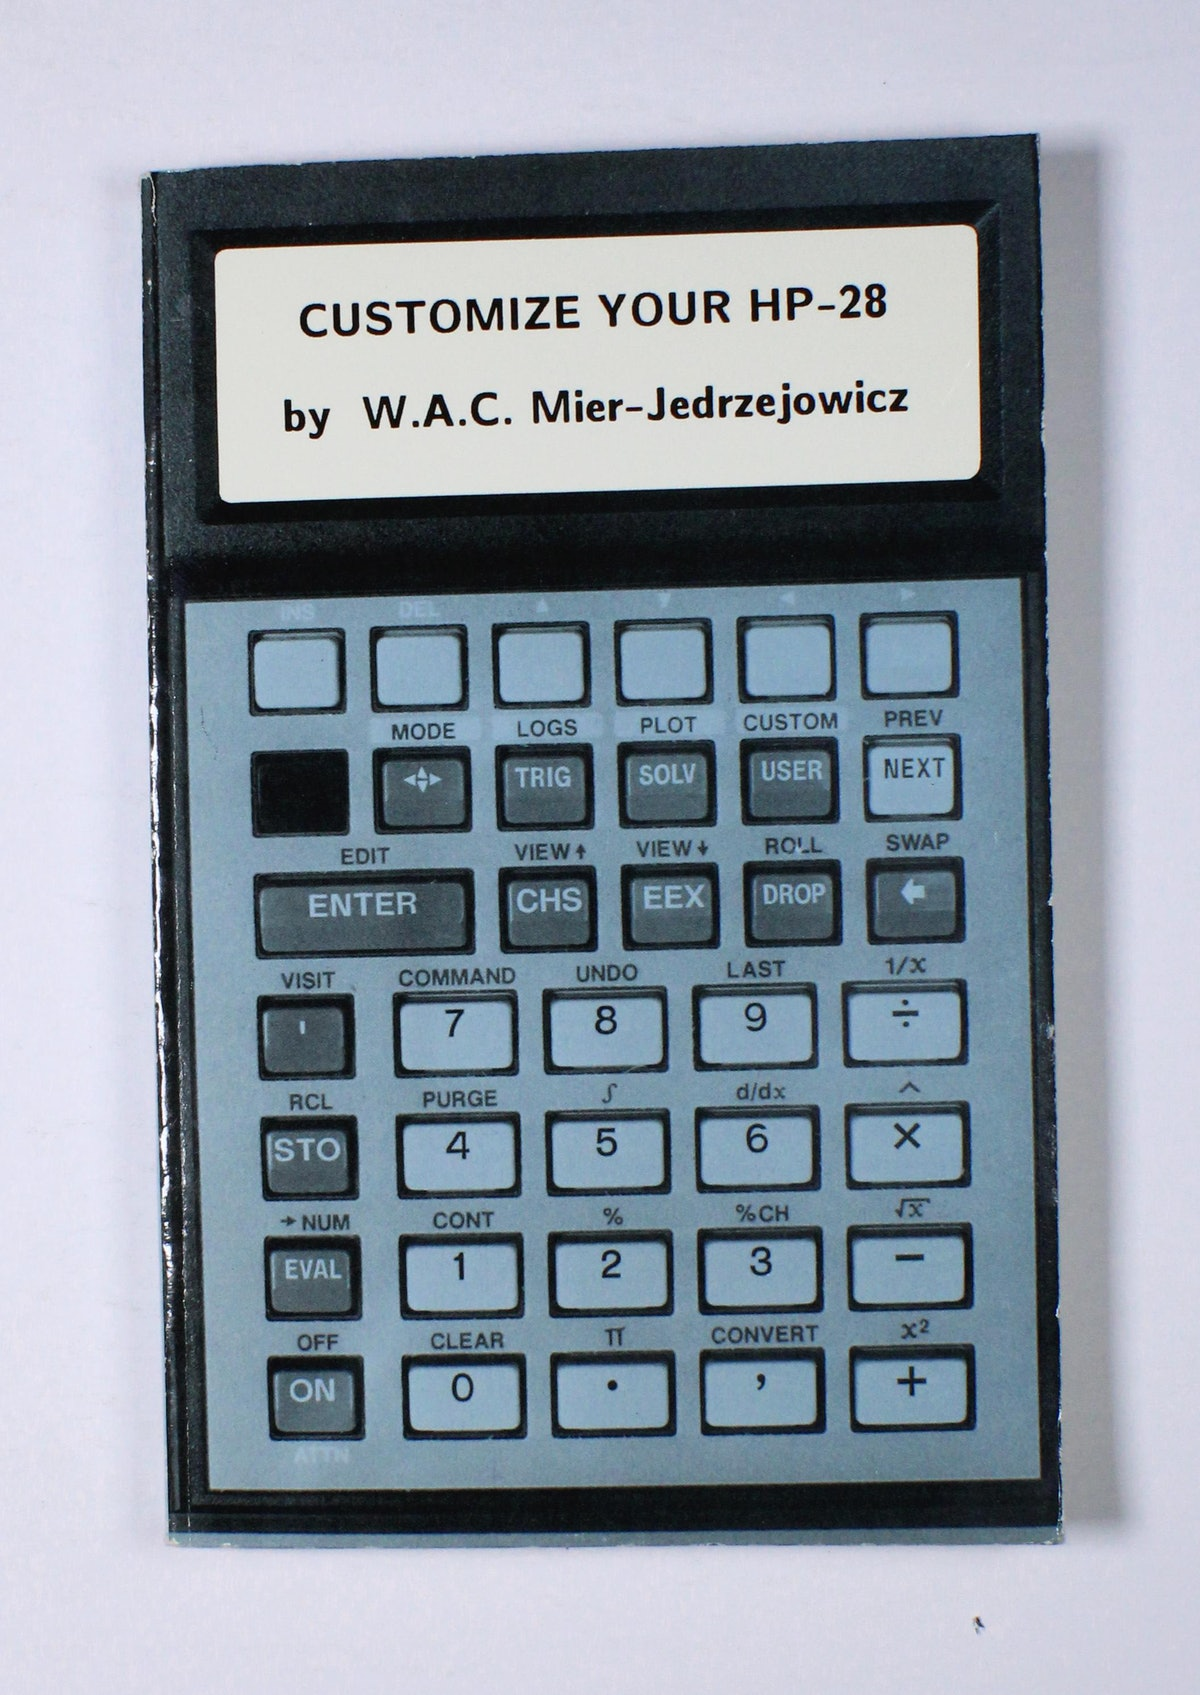 Customize Your HP-28